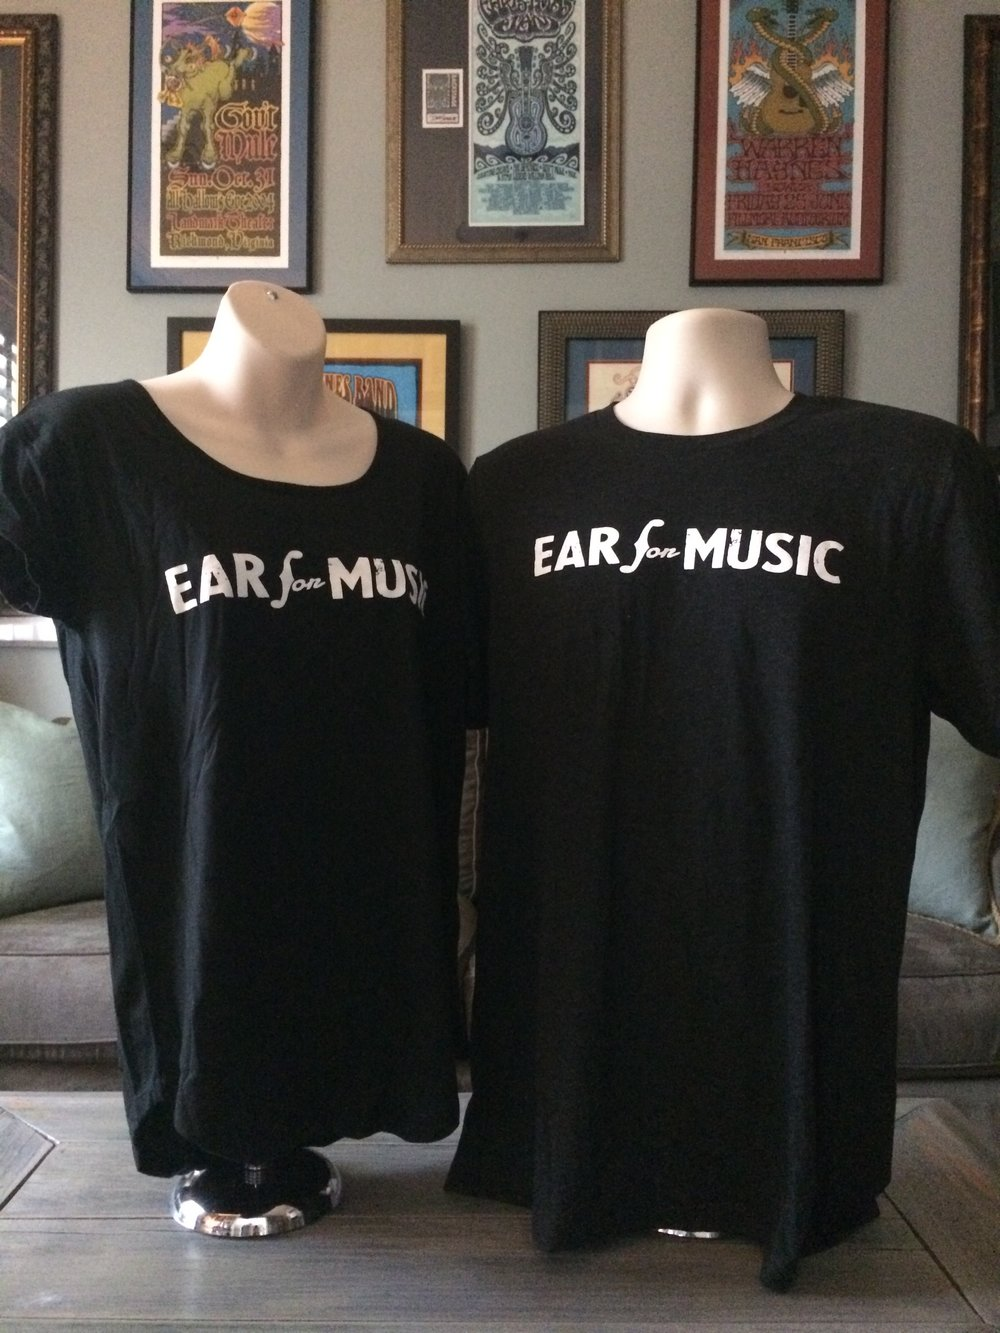 Ear for Music.JPG